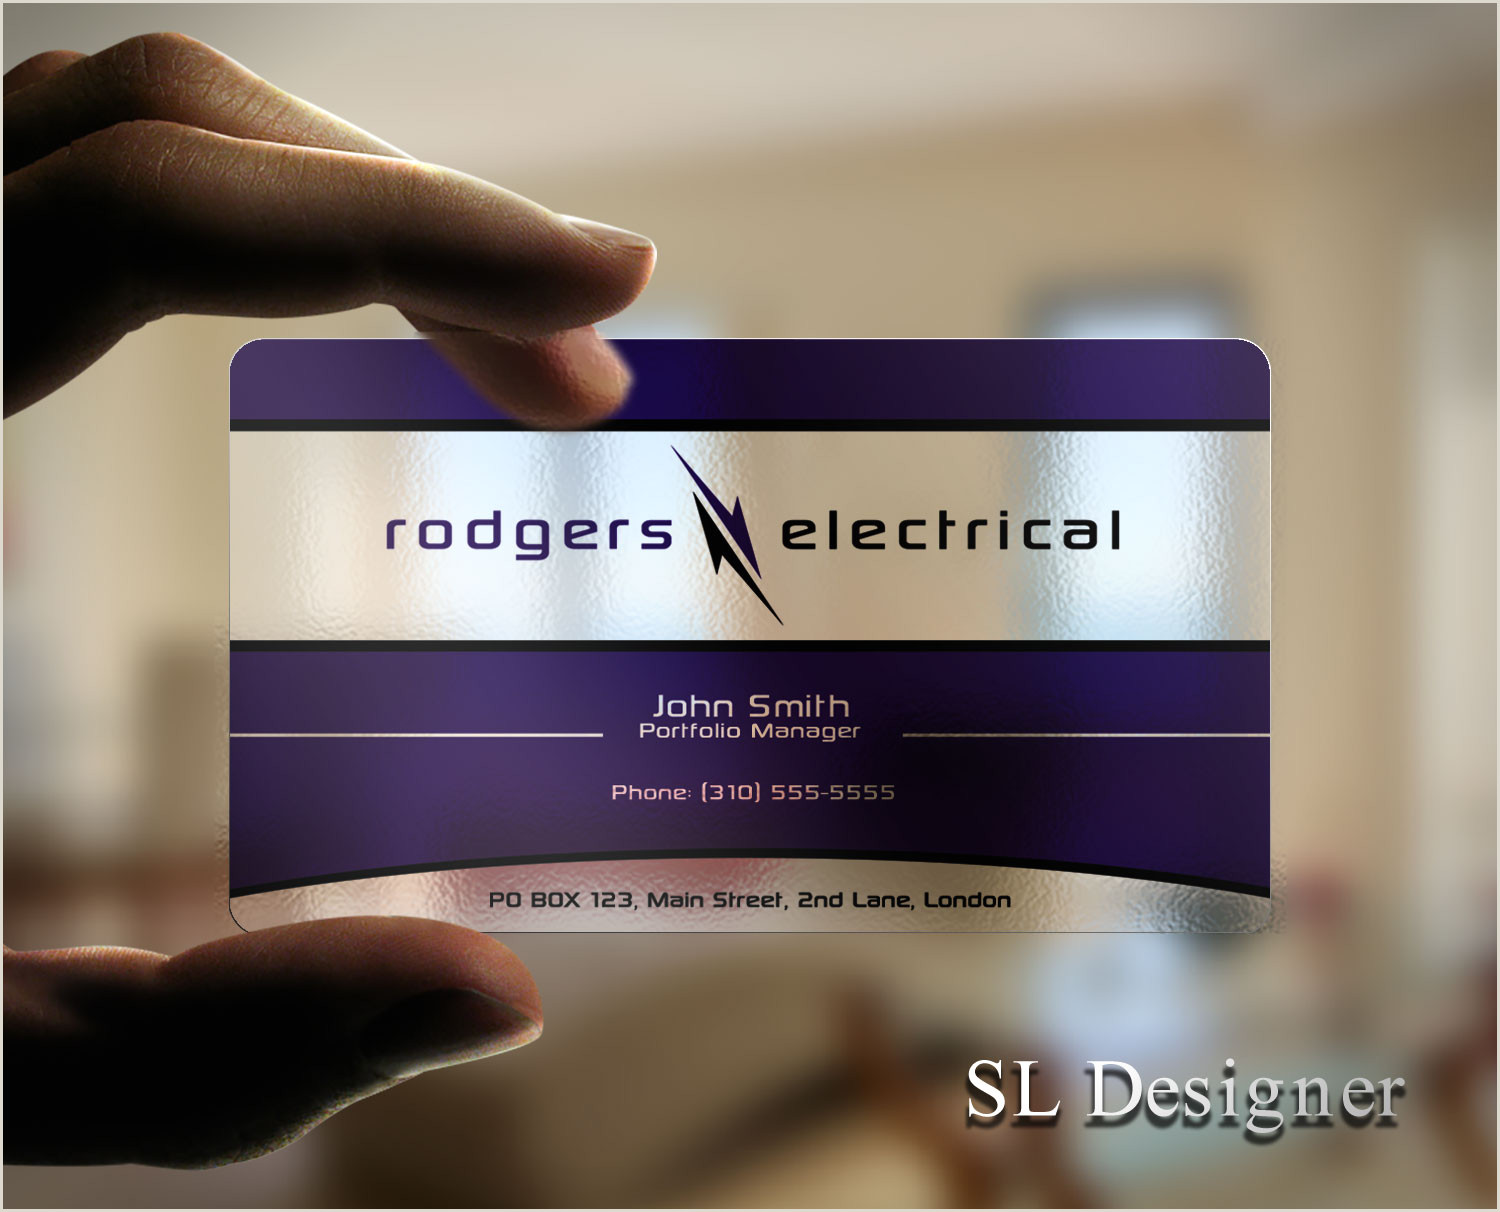 Unique Electrician Business Cards Top 25 Electrician Business Cards From Around The Web